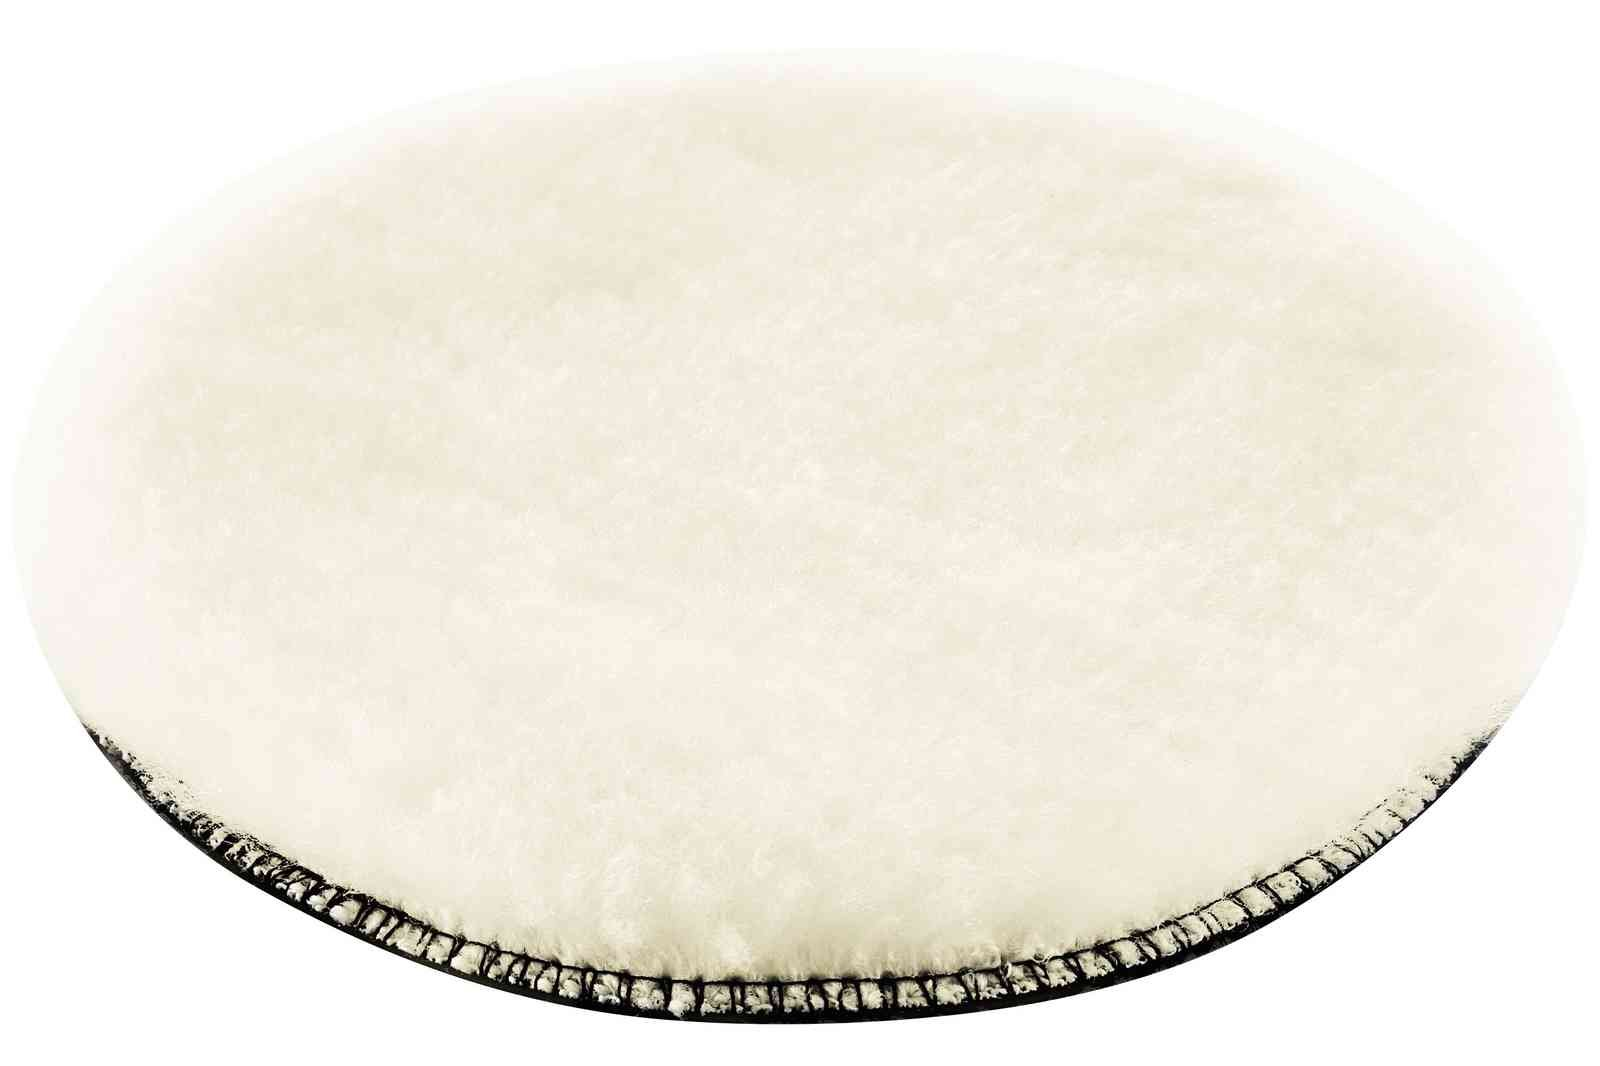 Festool 202045 Premium sheepskin polishing pad LF STF D 125/1